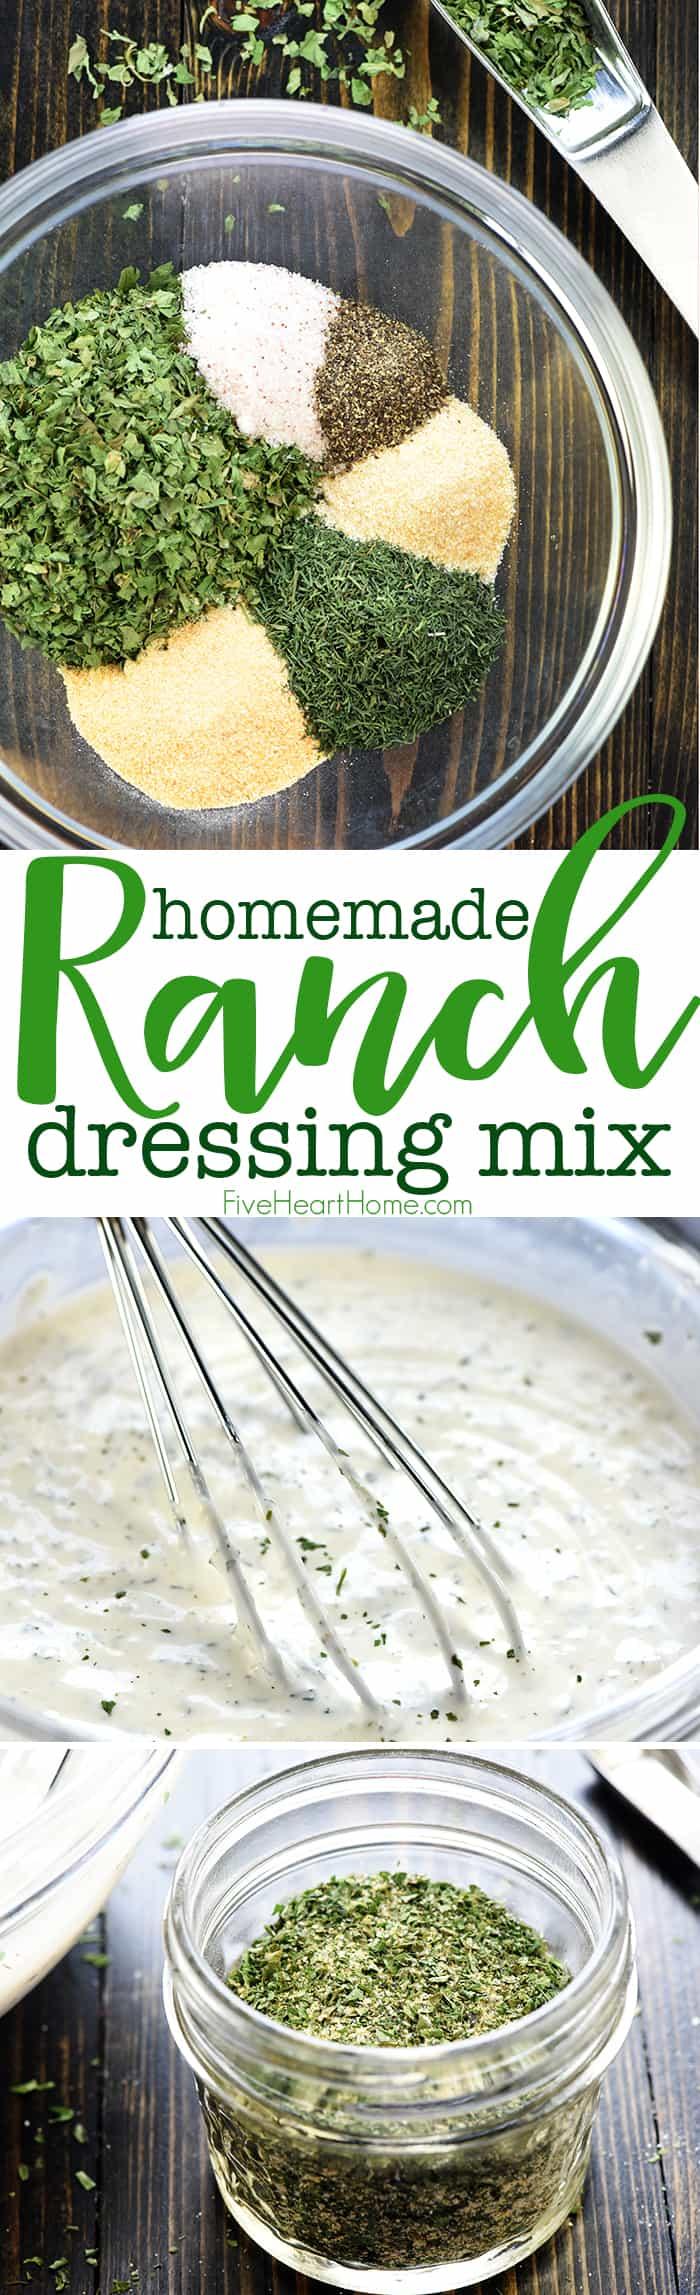 Homemade Ranch Dressing Mix ~ an easy, DIY, dry seasoning mix, perfect for whipping up homemade ranch salad dressing or flavoring other recipes! | FiveHeartHome.com